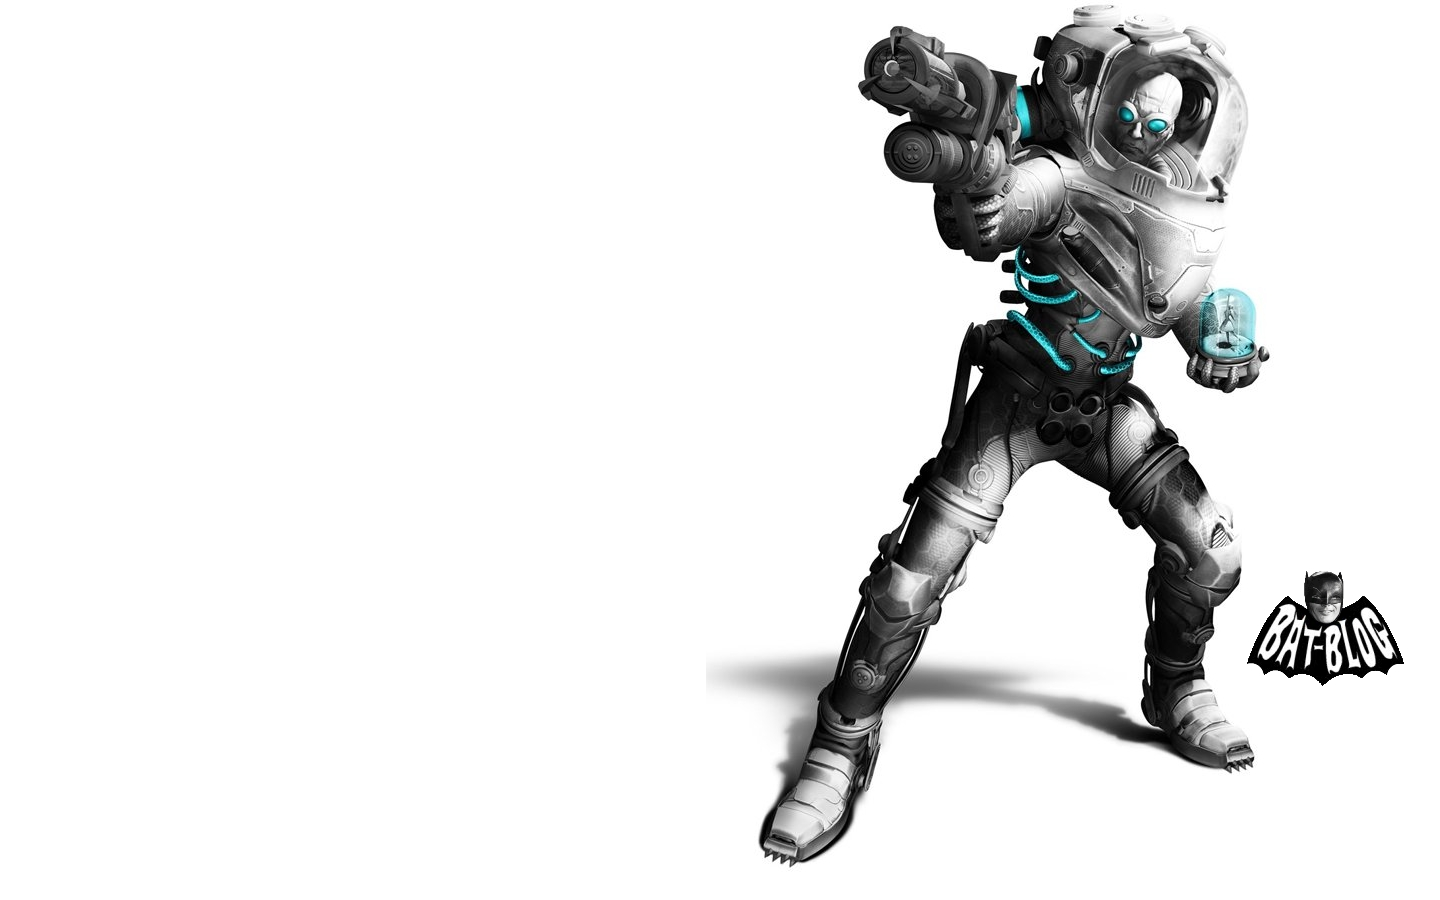 mr freeze in batman arkham city wallpapers - Mr Freeze Arkham City HD desktop wallpaper High